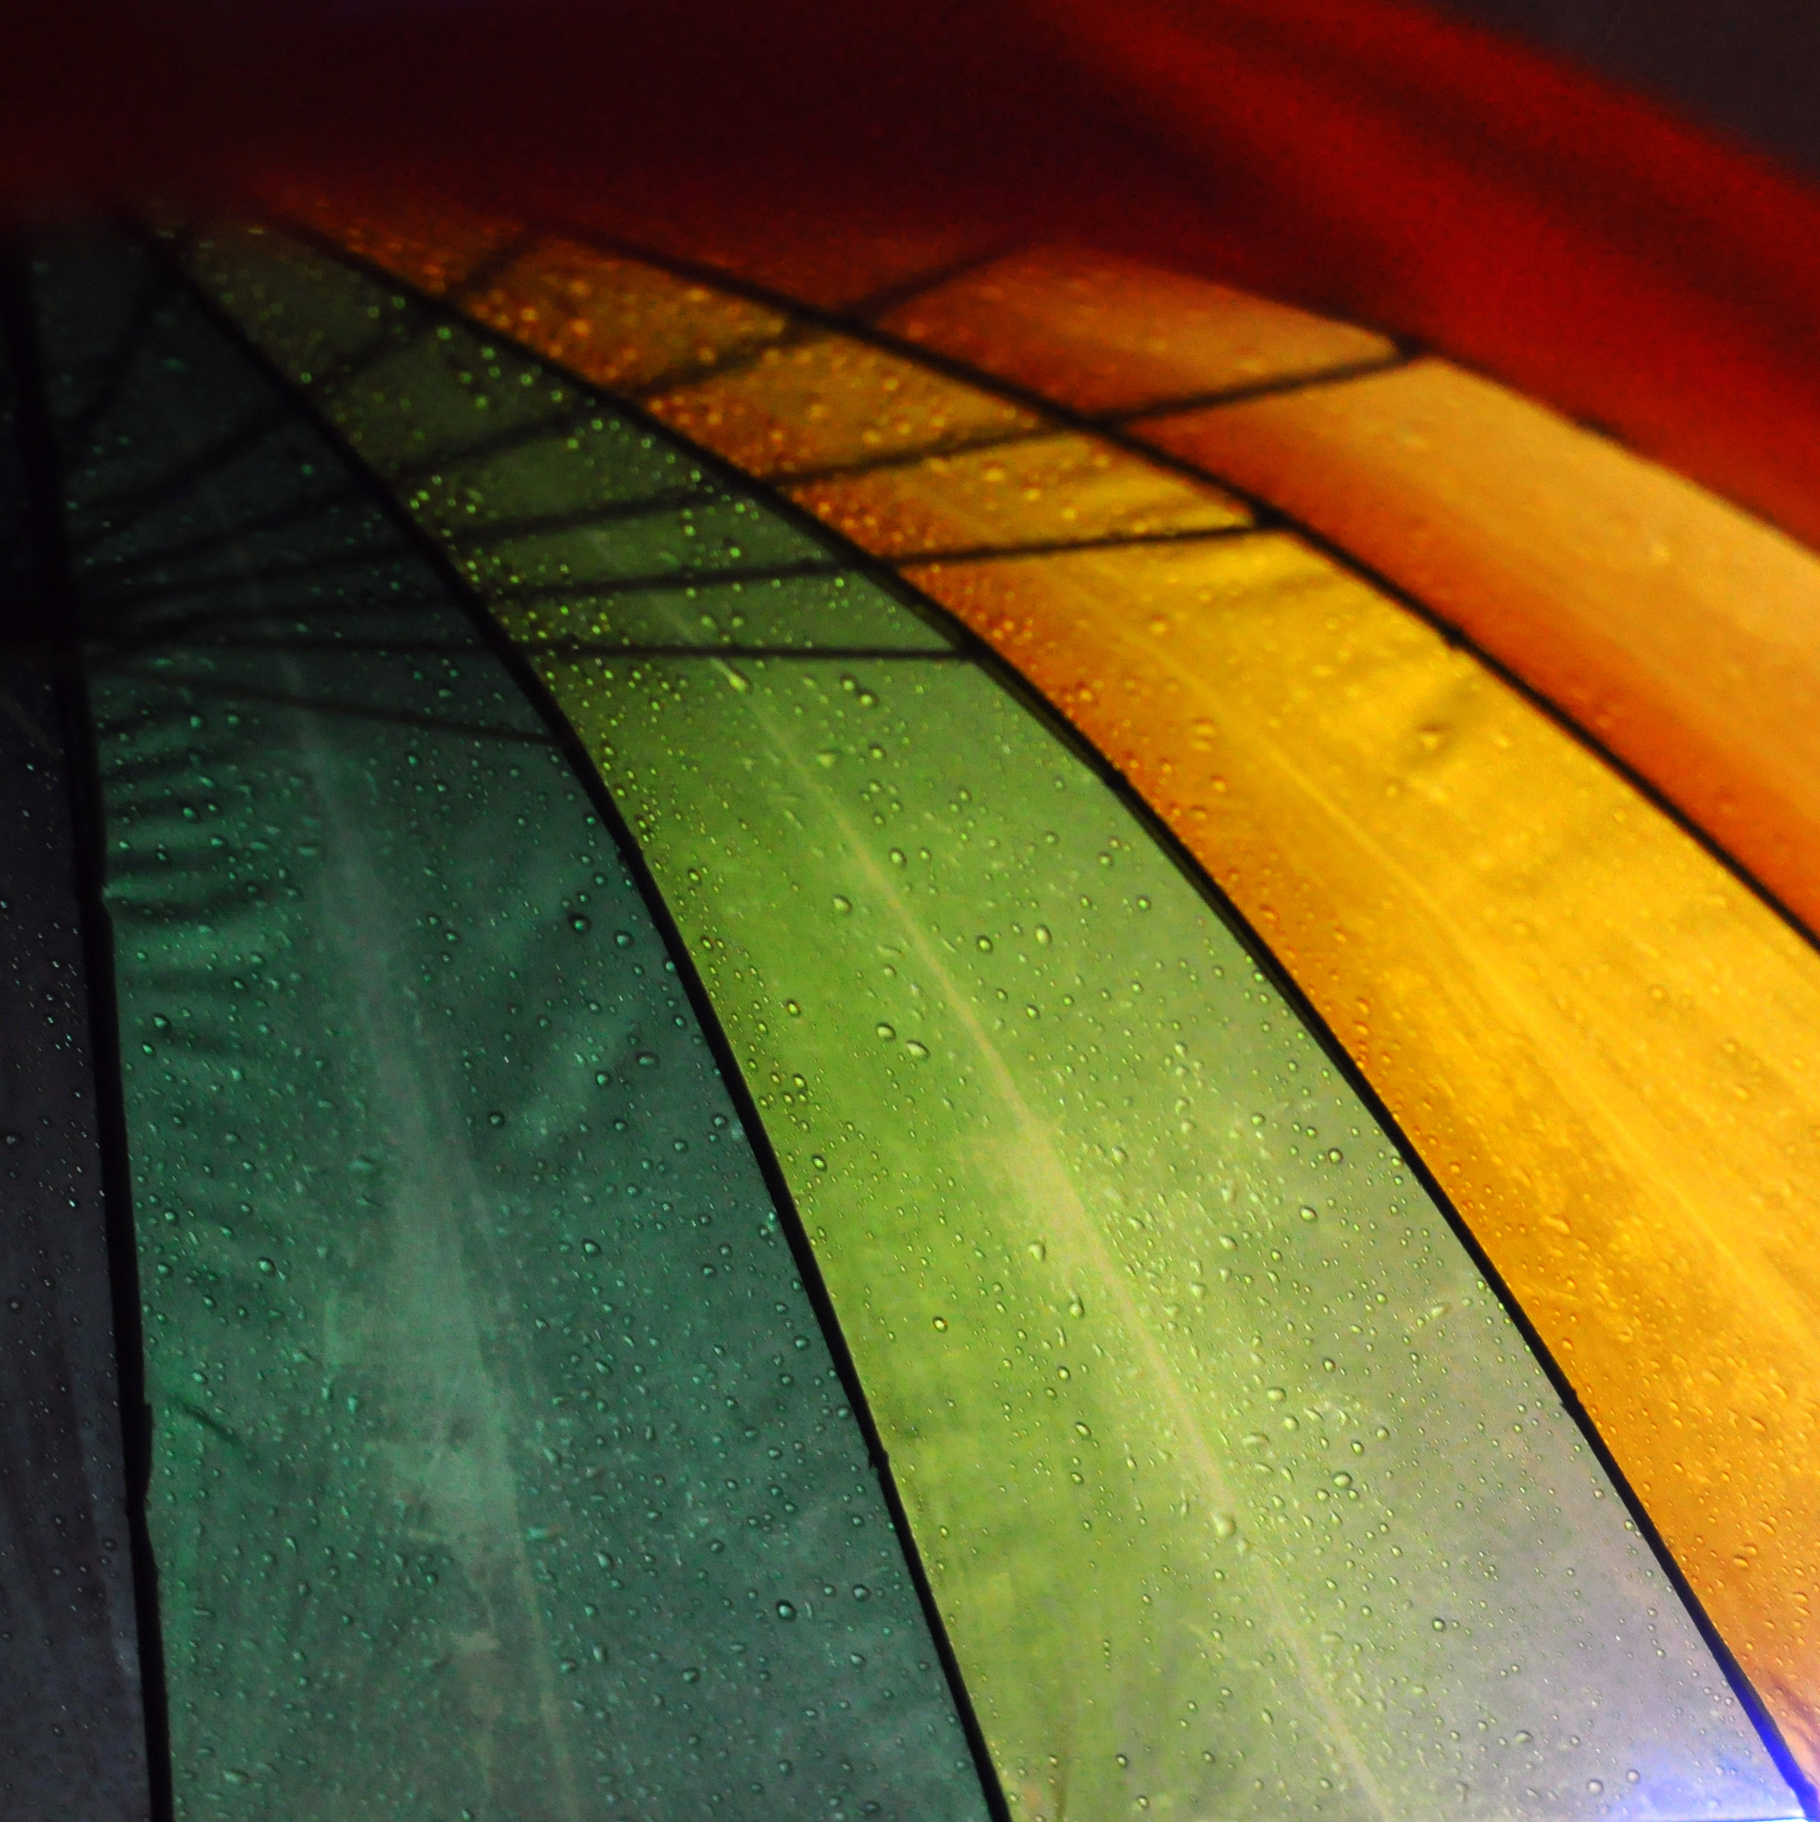 Photo Rainbow - Anne d'Huart, publiée dans Backlight Magazine Issue 3